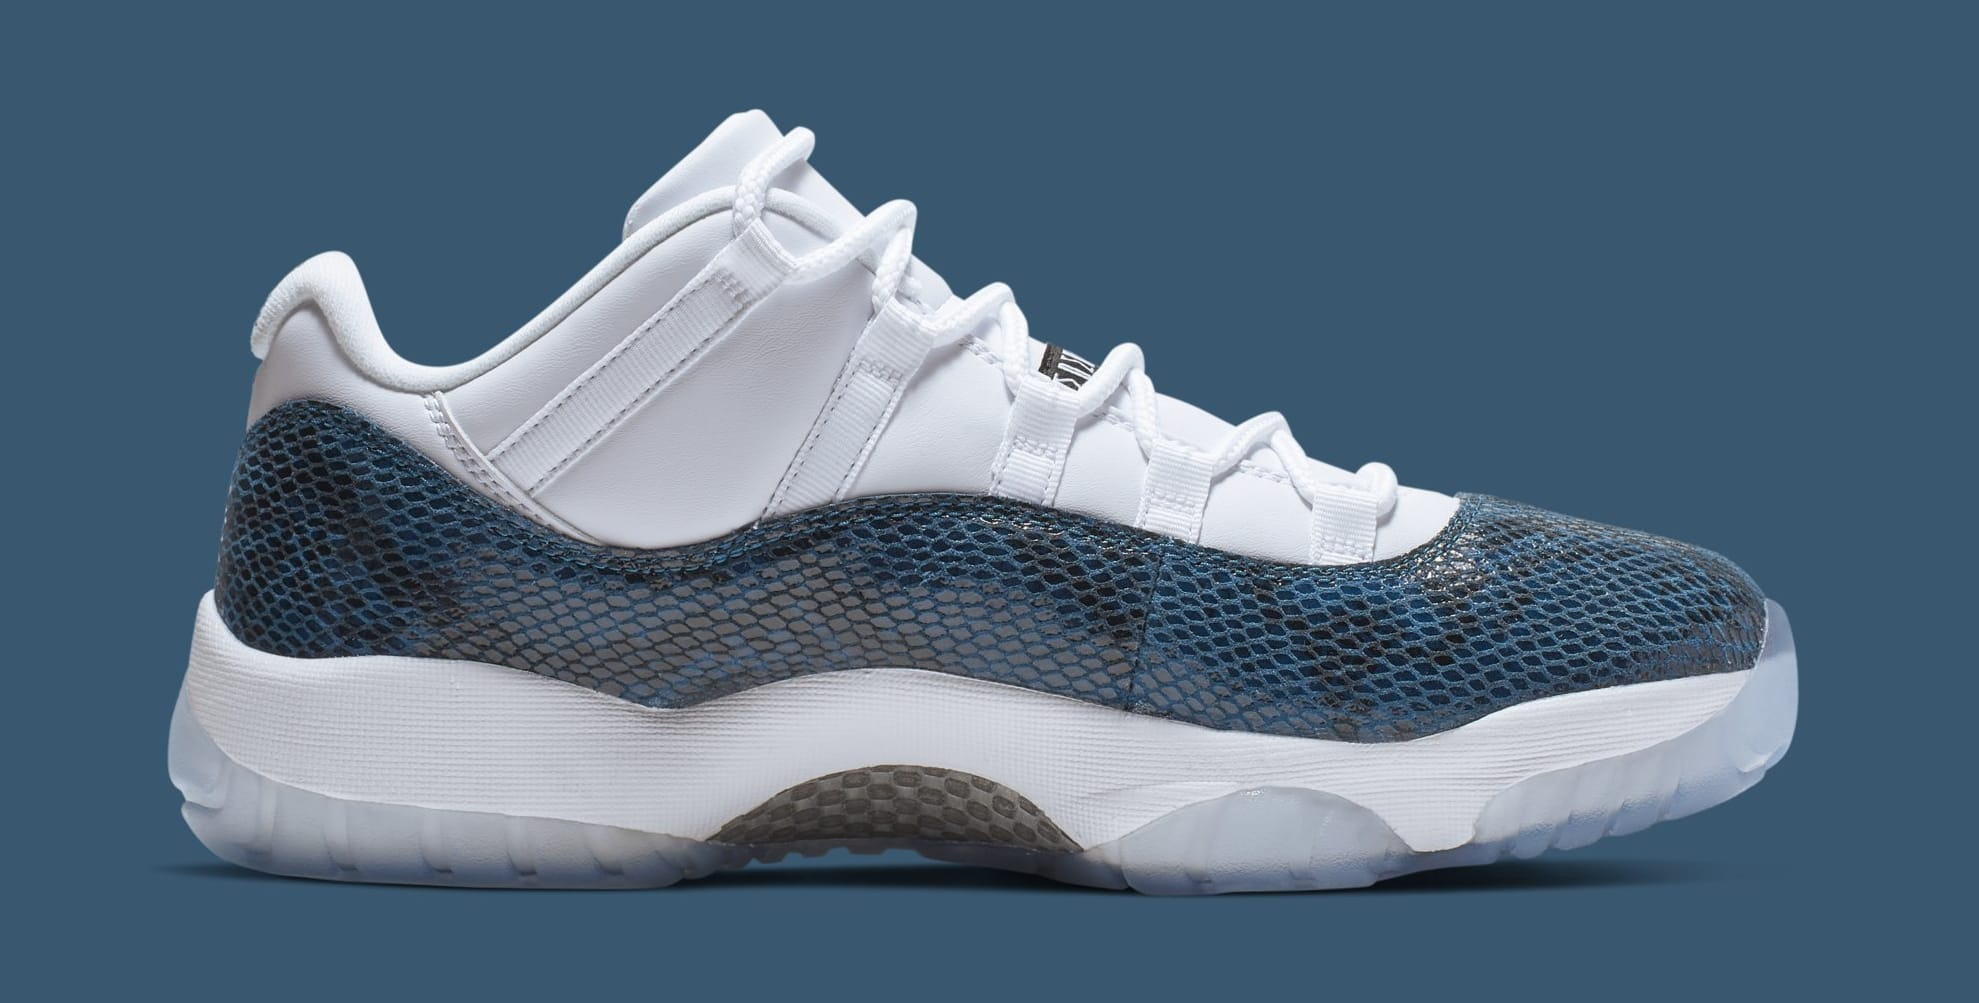 b64197f9a091 Image via Nike Air Jordan 11 Low  Blue Snakeskin  CD6846-102 (Medial)